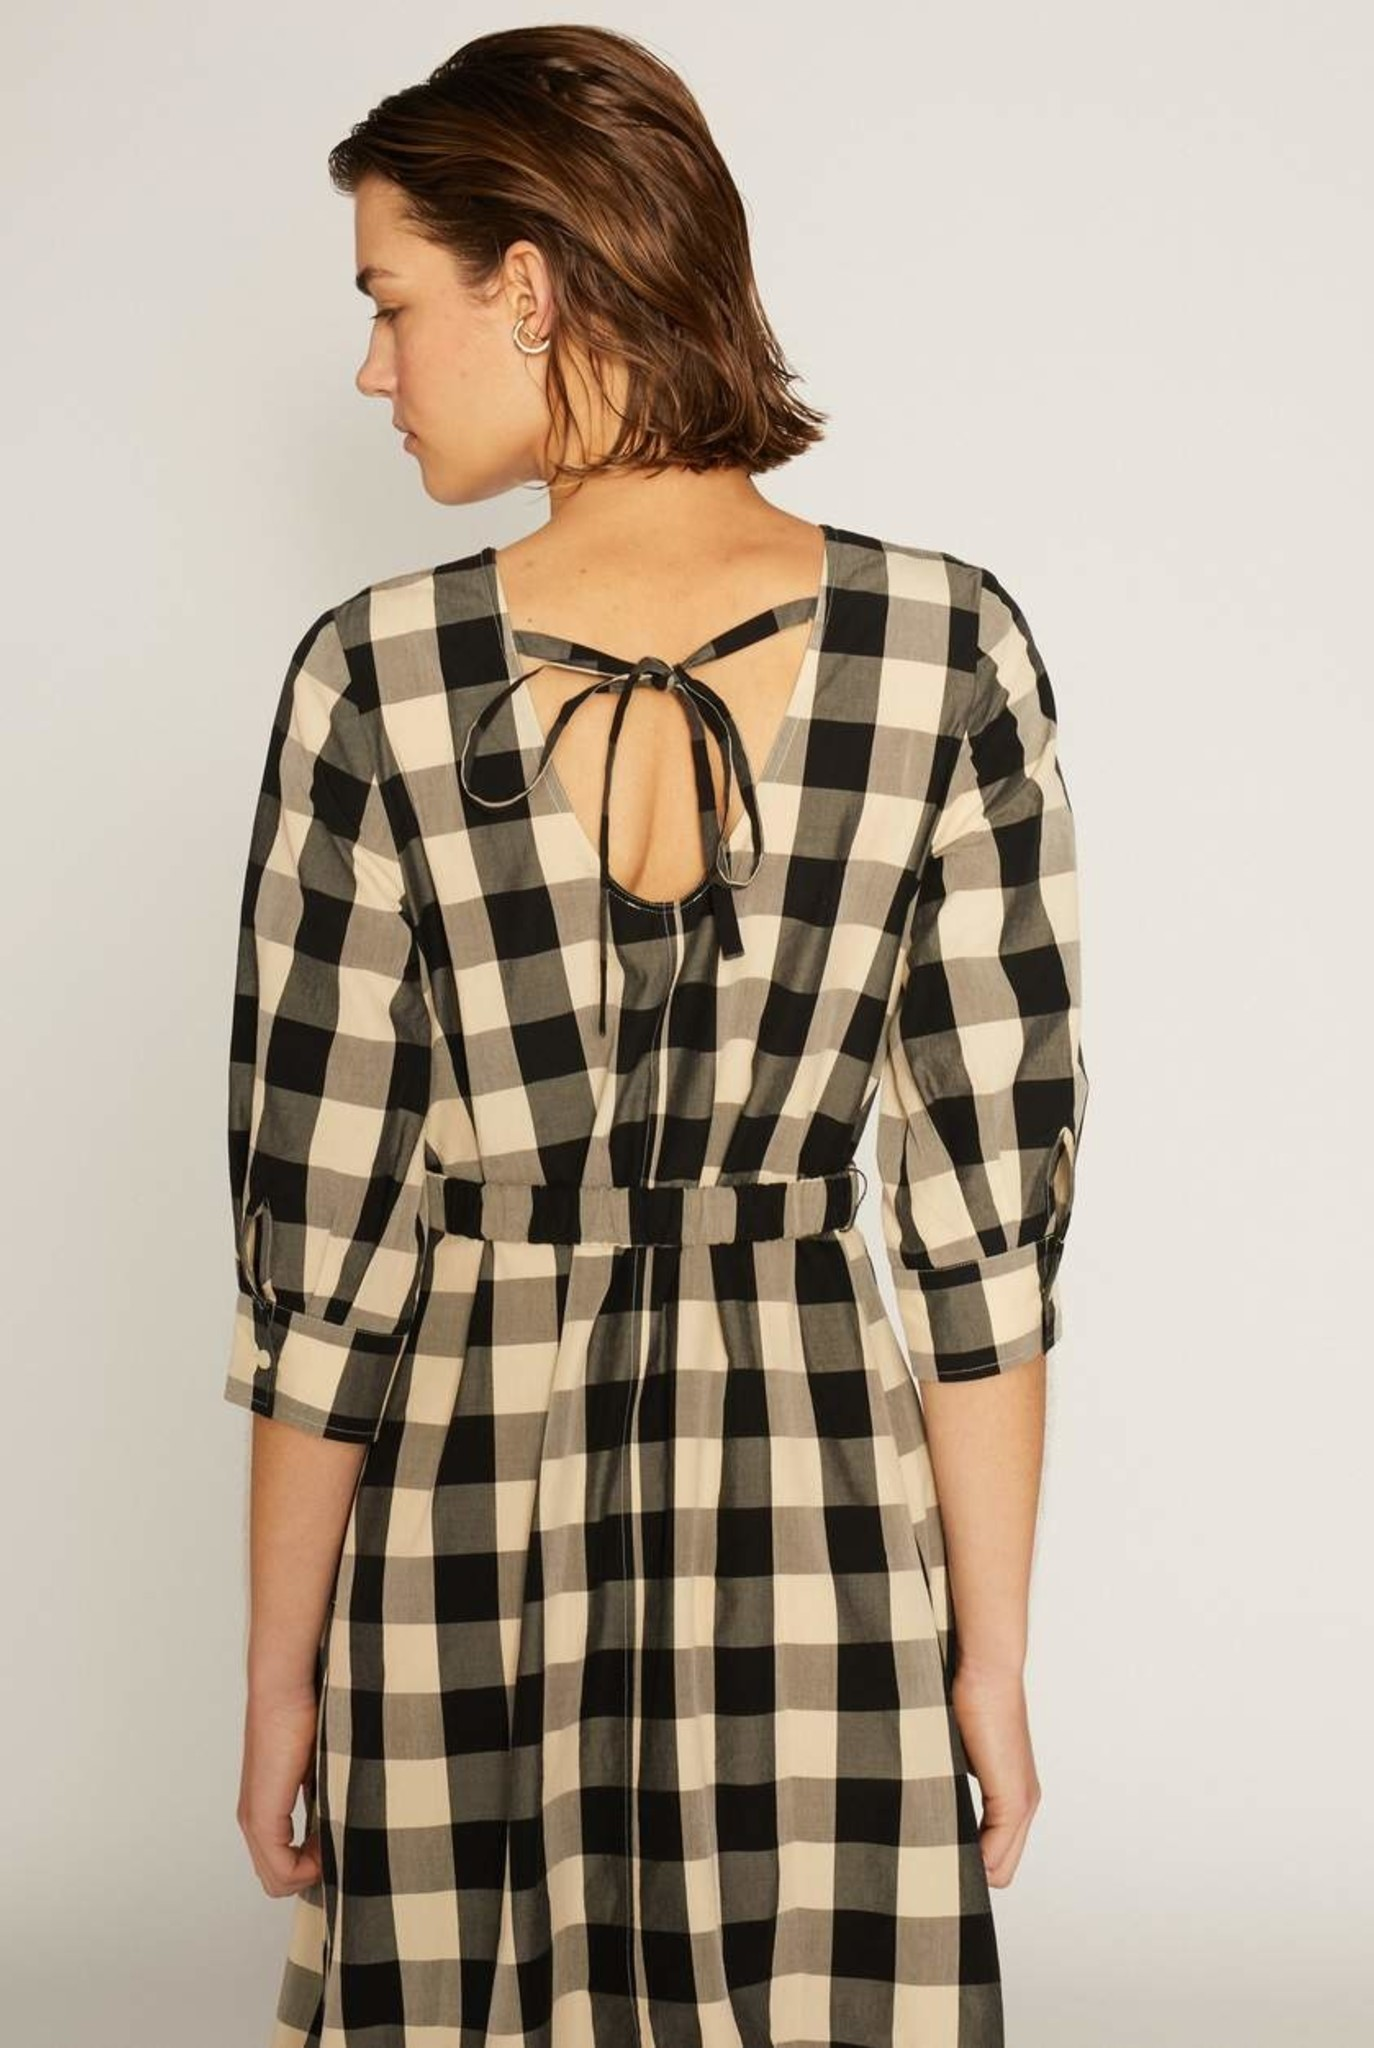 Bysee Dress Black / Ecru Check